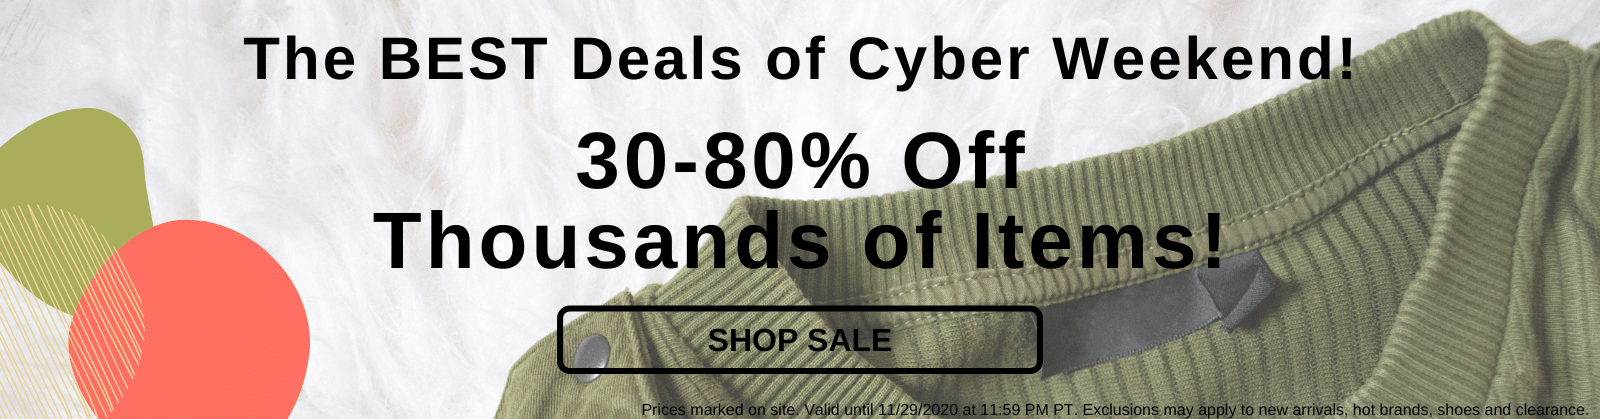 The BEST Deals of Cyber Weekend! 30-80% Off Thousands of Items! [Shop Sale]